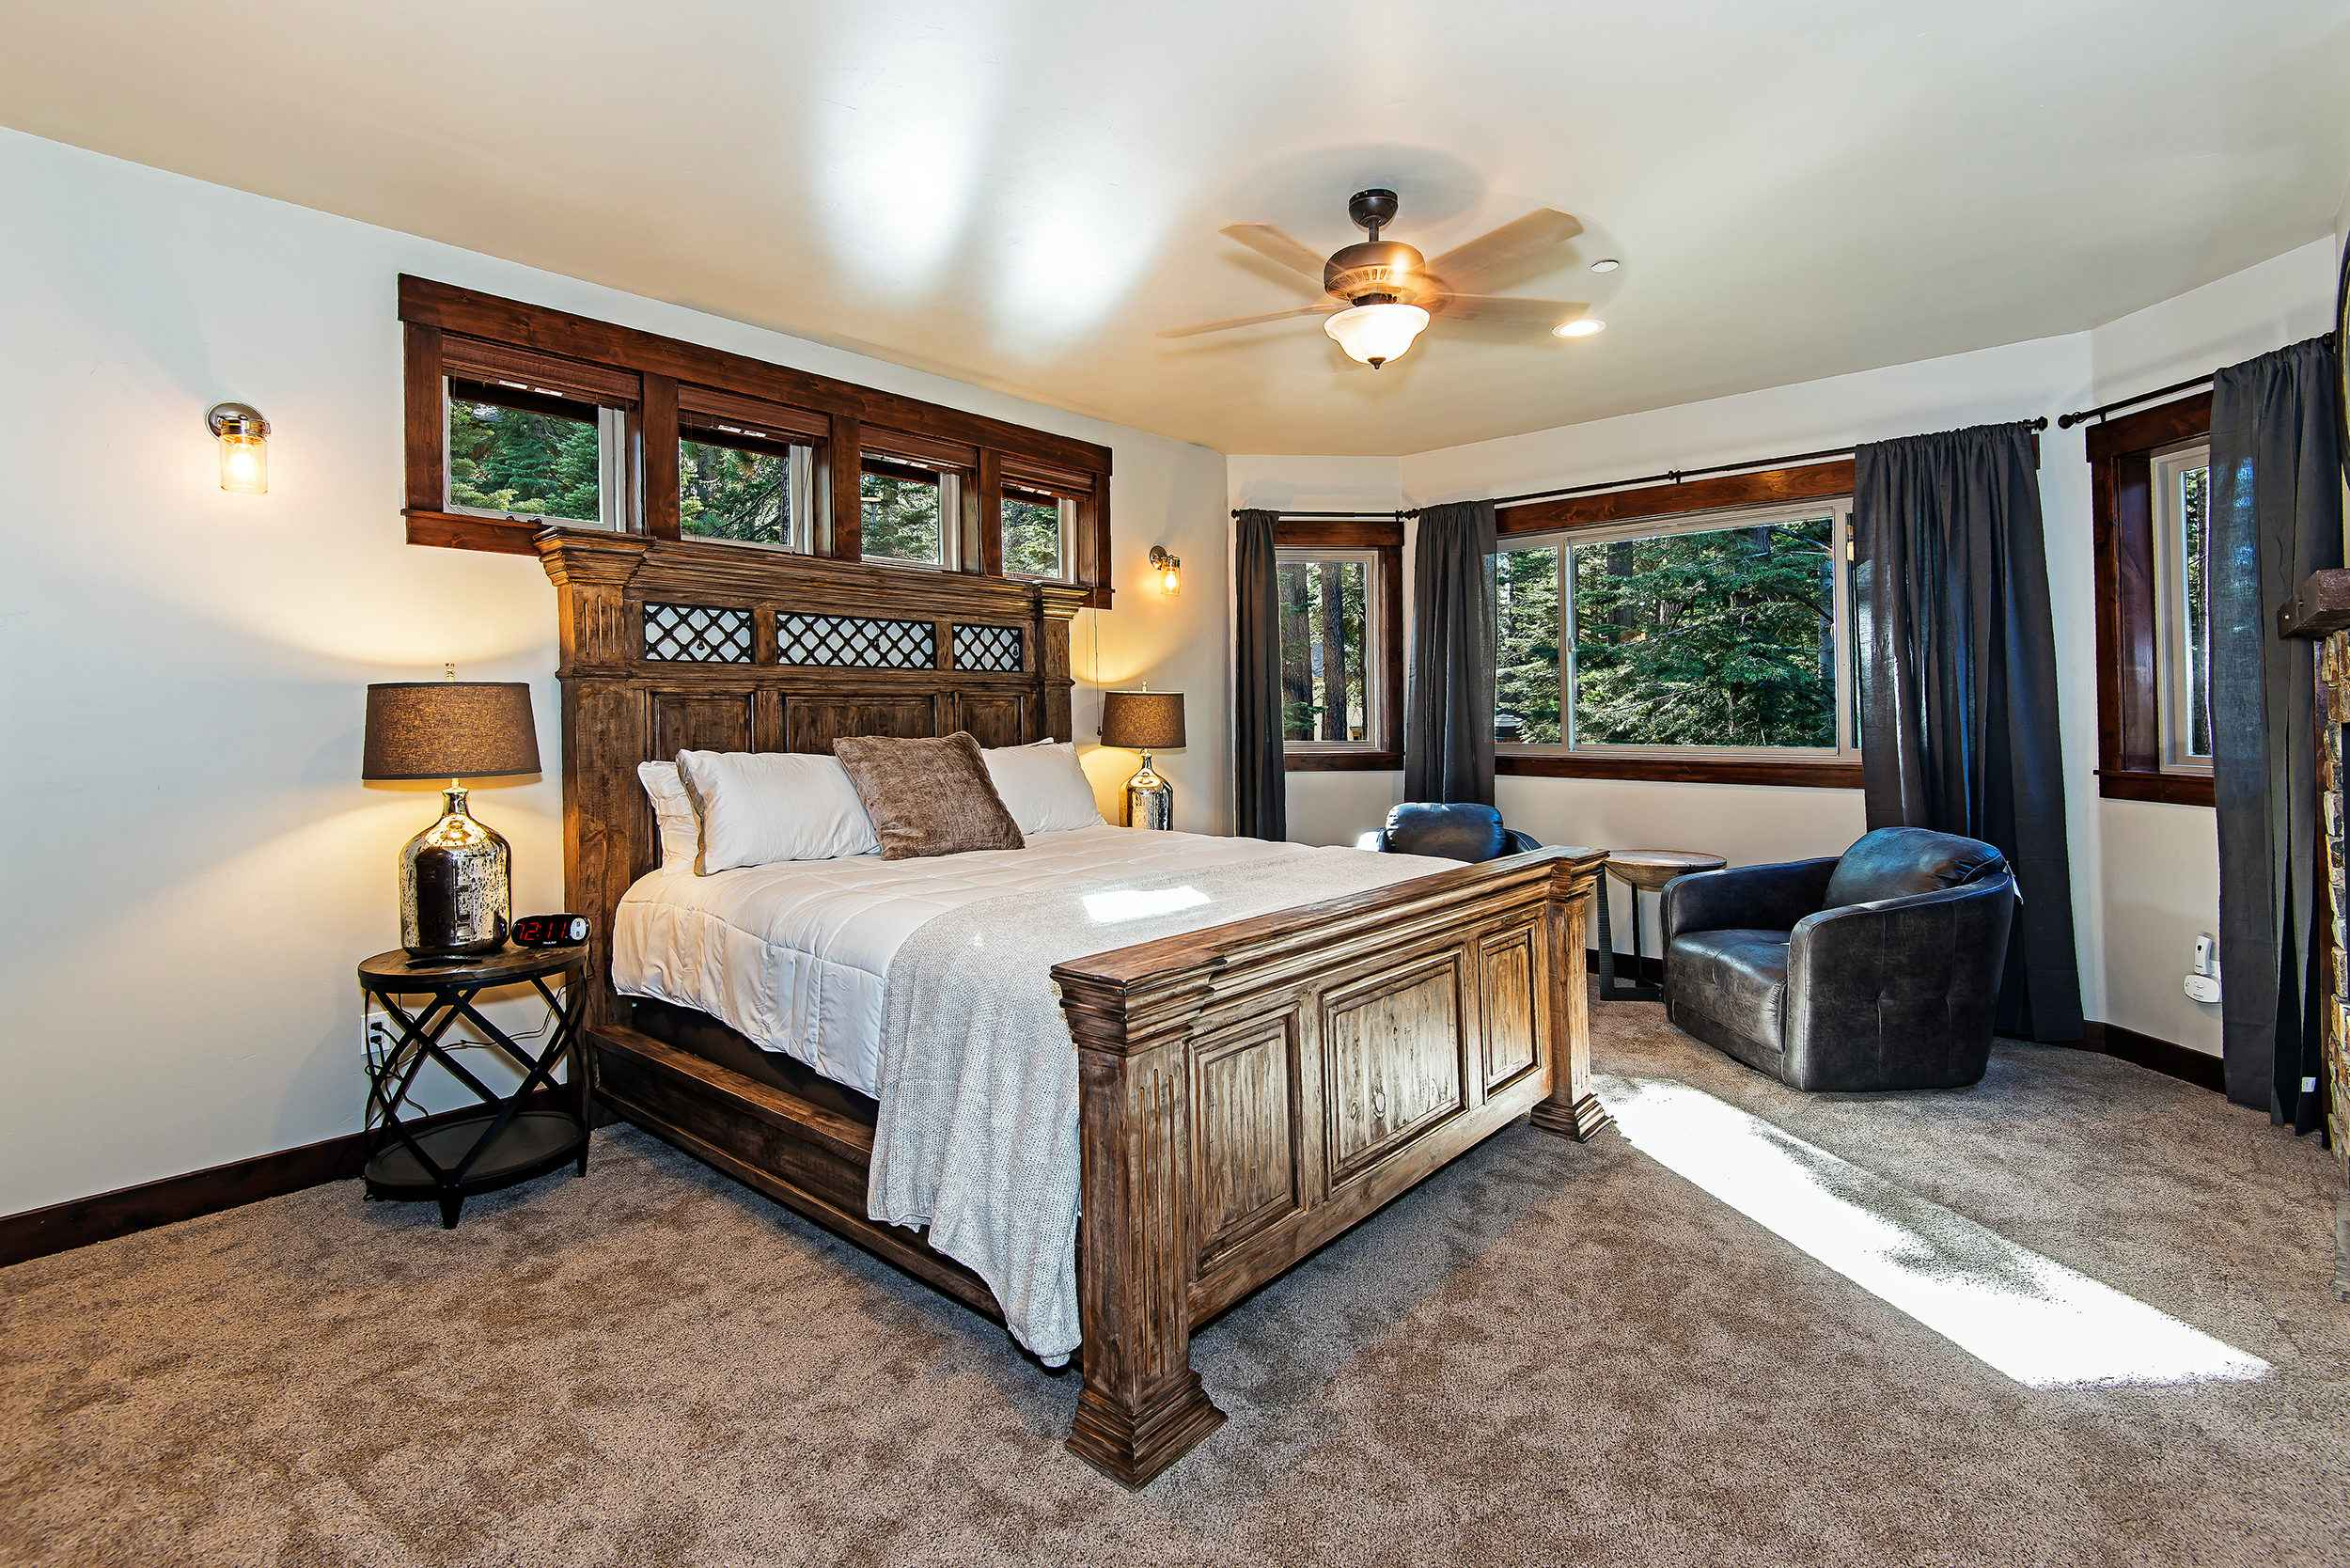 prop_1468_1482361217_10_bedroom_luxury_heavenly_estate.jpg